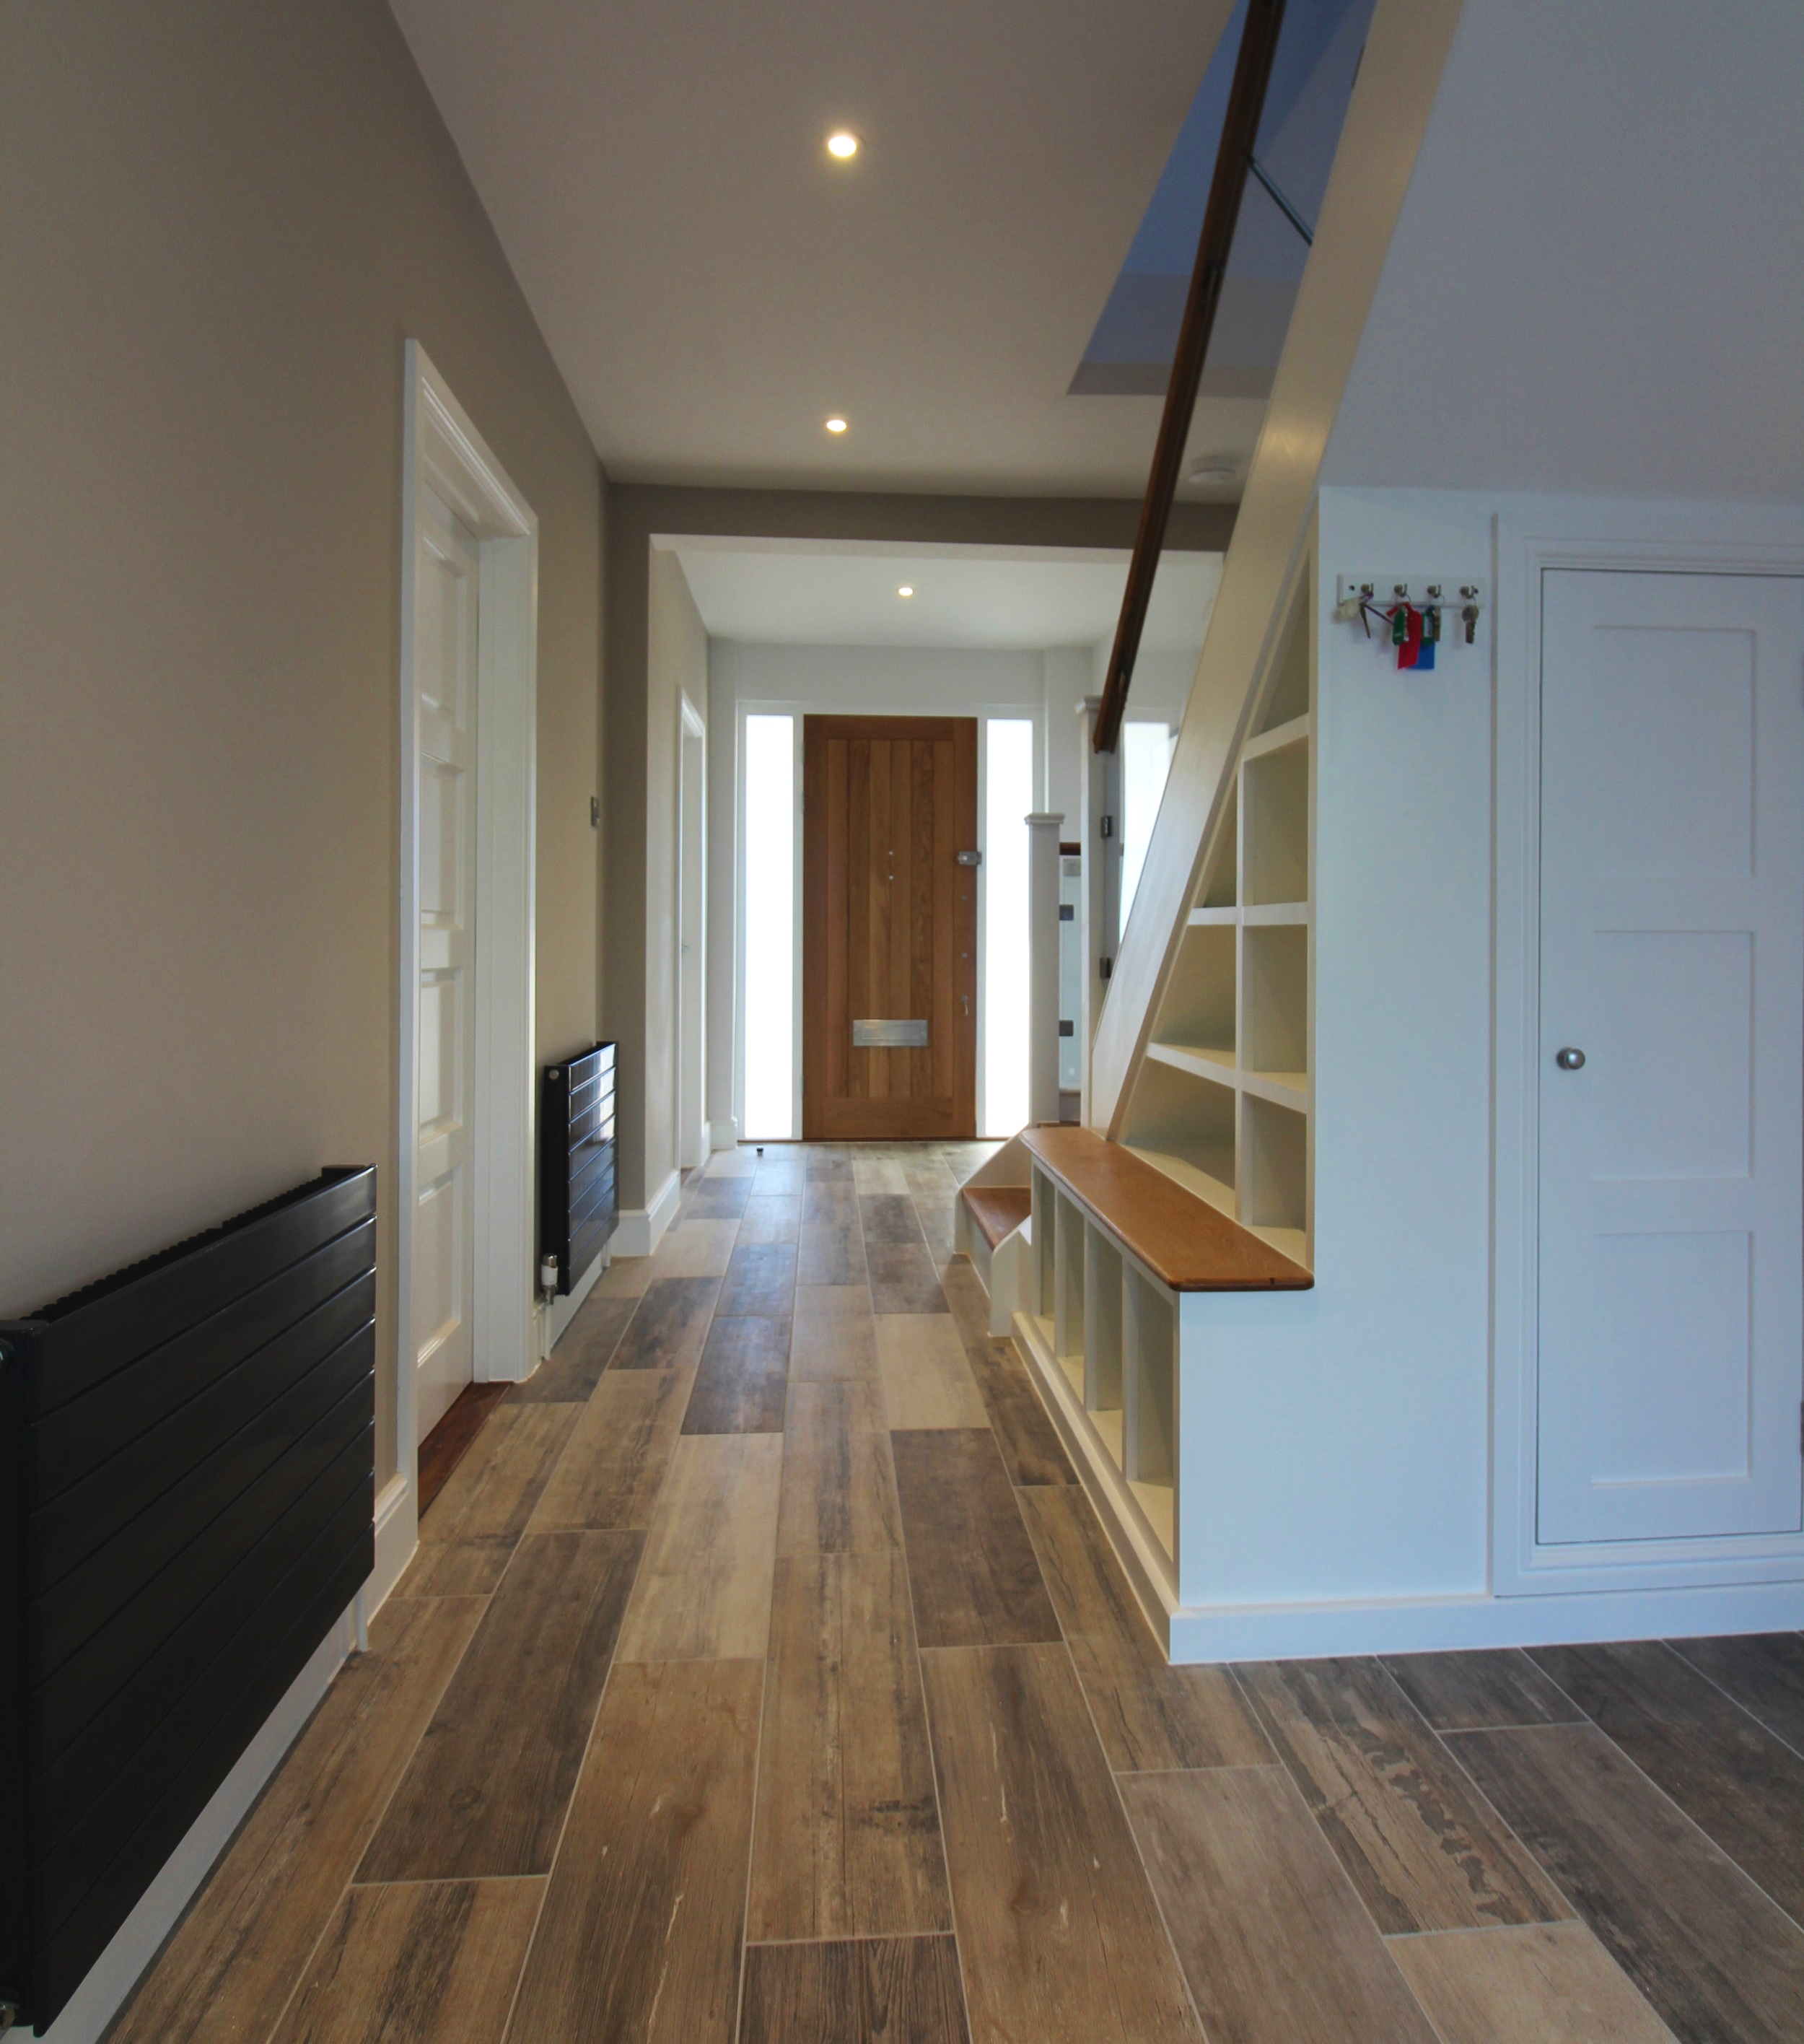 The existing staircase was revamped, adding oak treads and handrails, with glass balustrade. Fully-integrated LED spotlights created low level lighting.